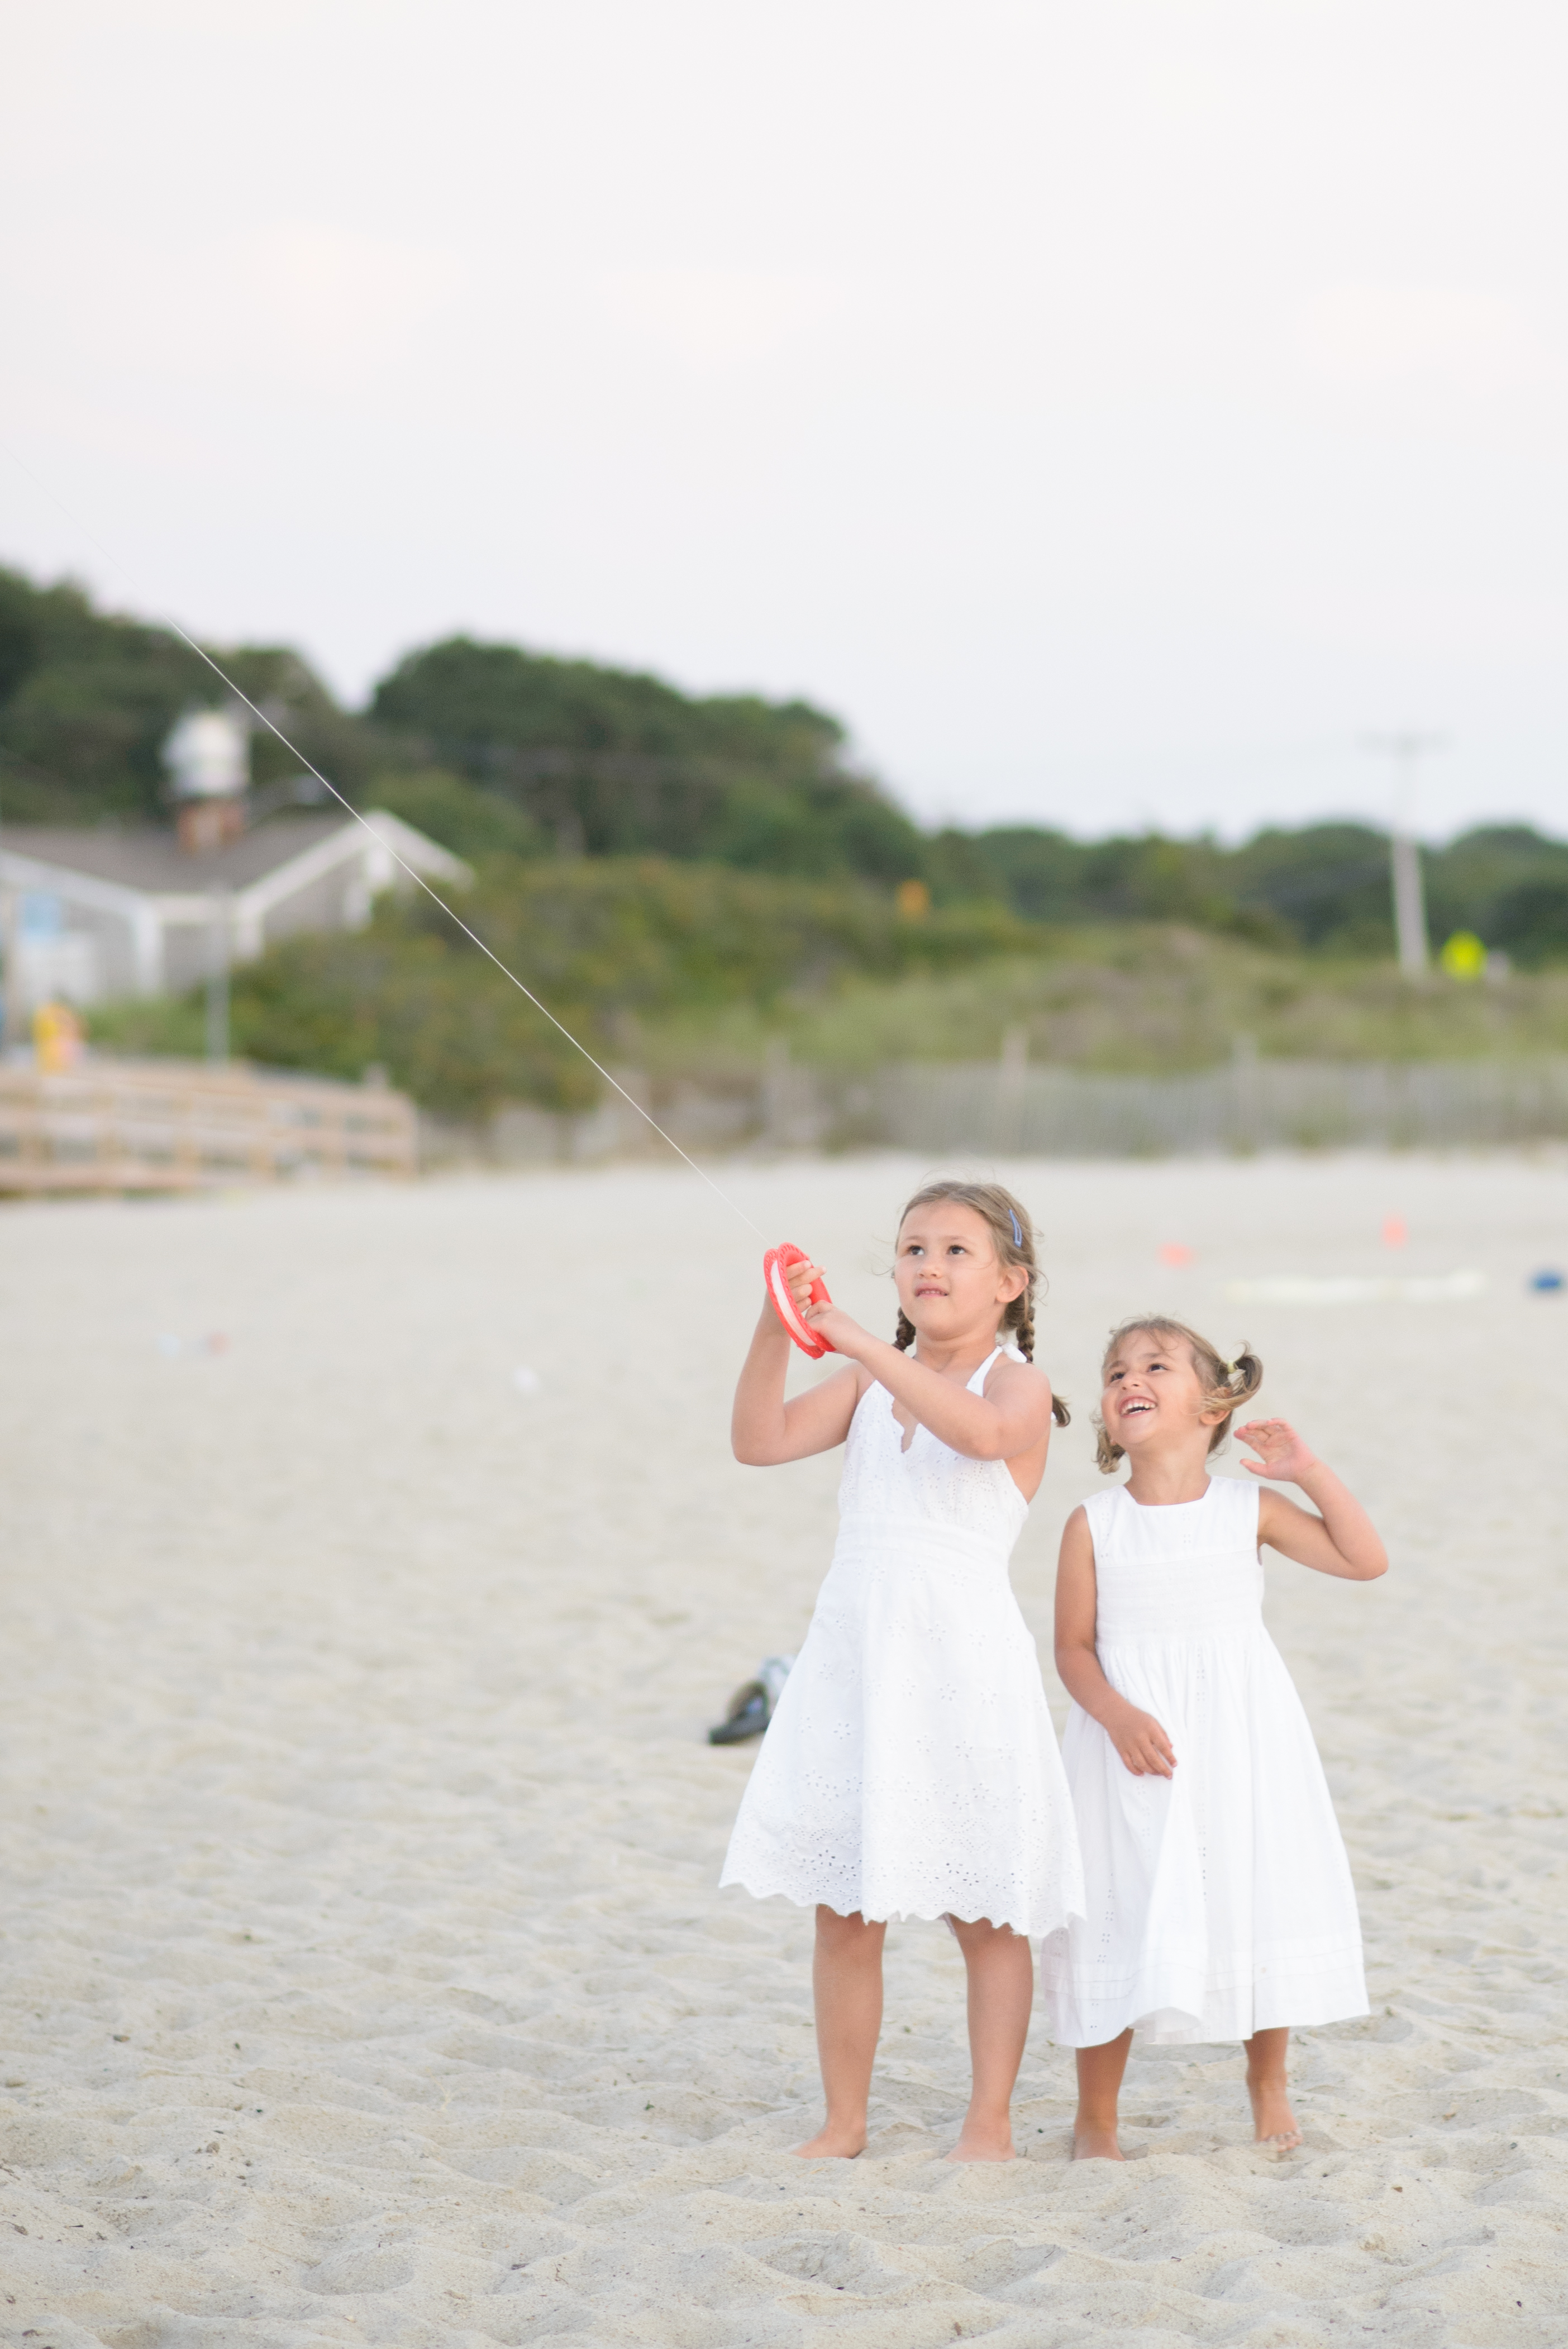 Girls flying the kite